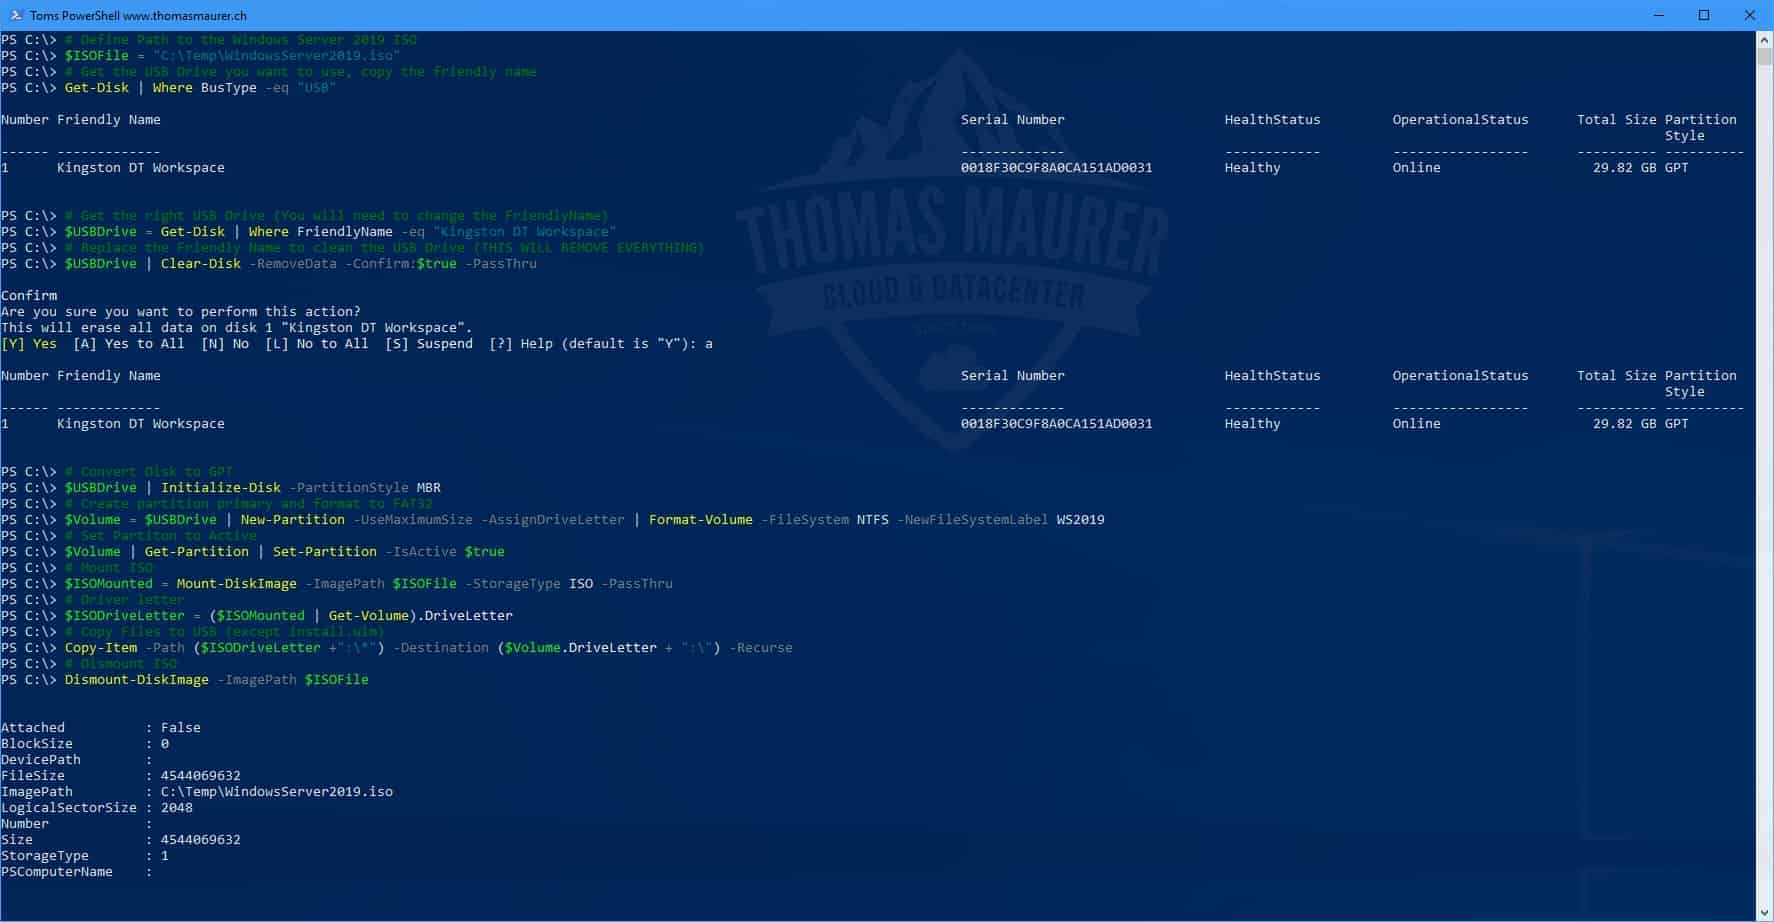 Create a USB Drive for Windows Server 2019 Installation - Thomas Maurer